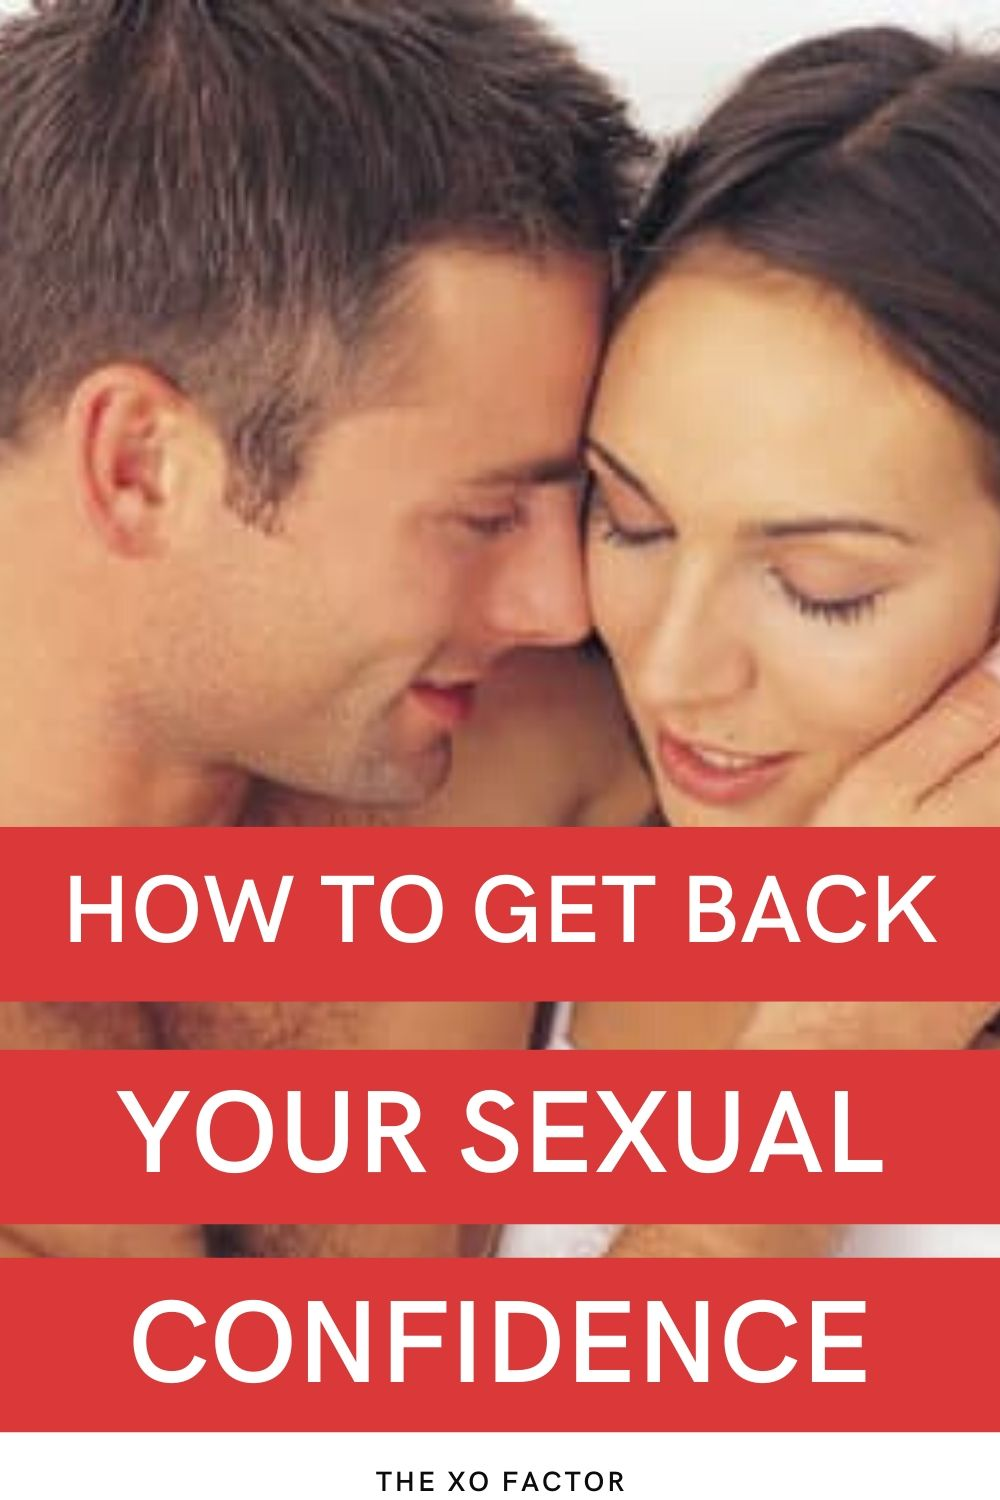 how to get back your sexual confidence